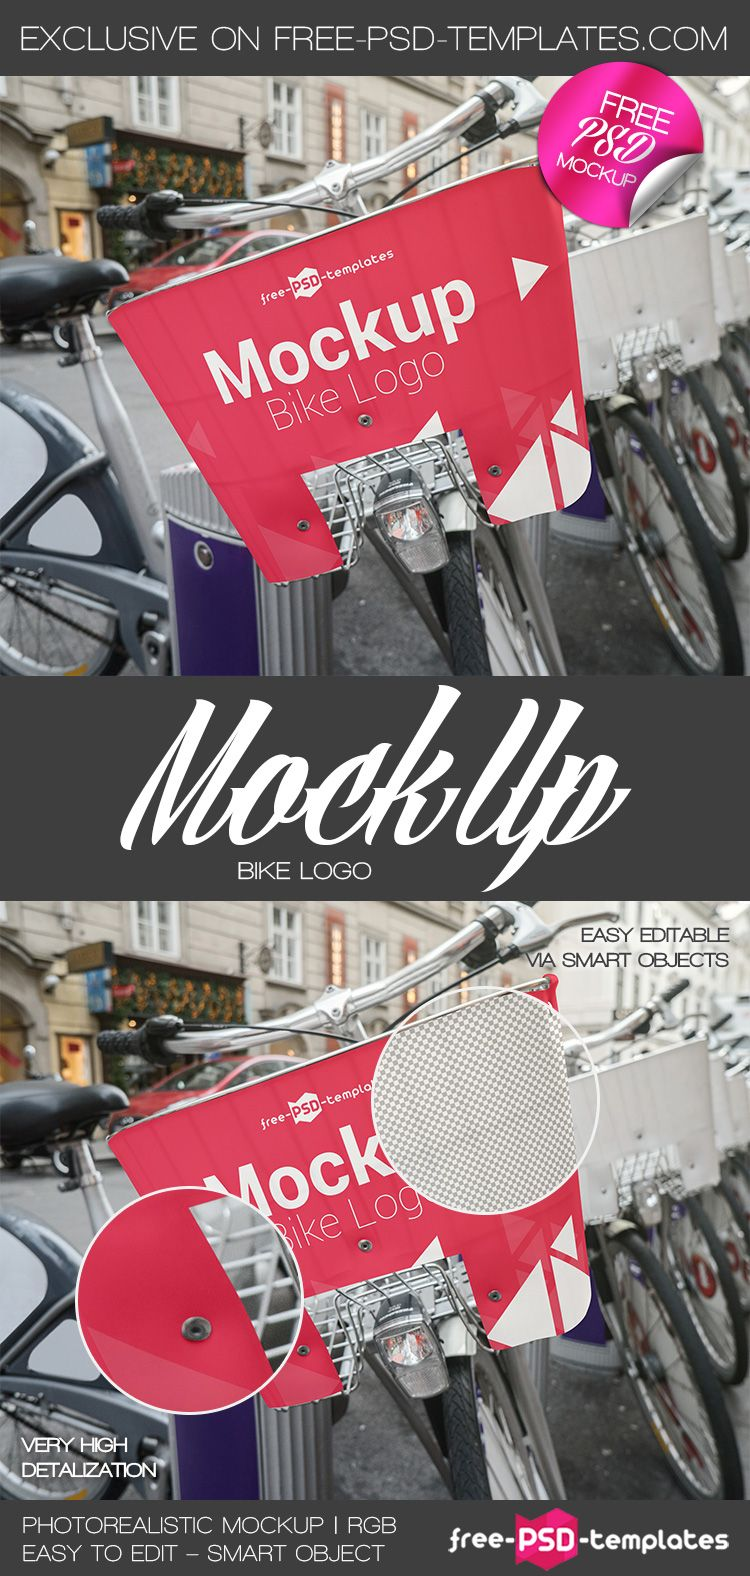 Download Free Bike Logo Mock Up In Psd Get An Amazing Photorealistic Free Bike Logo Mock Up In Psd For Absolutely Free And A Mockup Free Psd Psd Template Free Free Psd